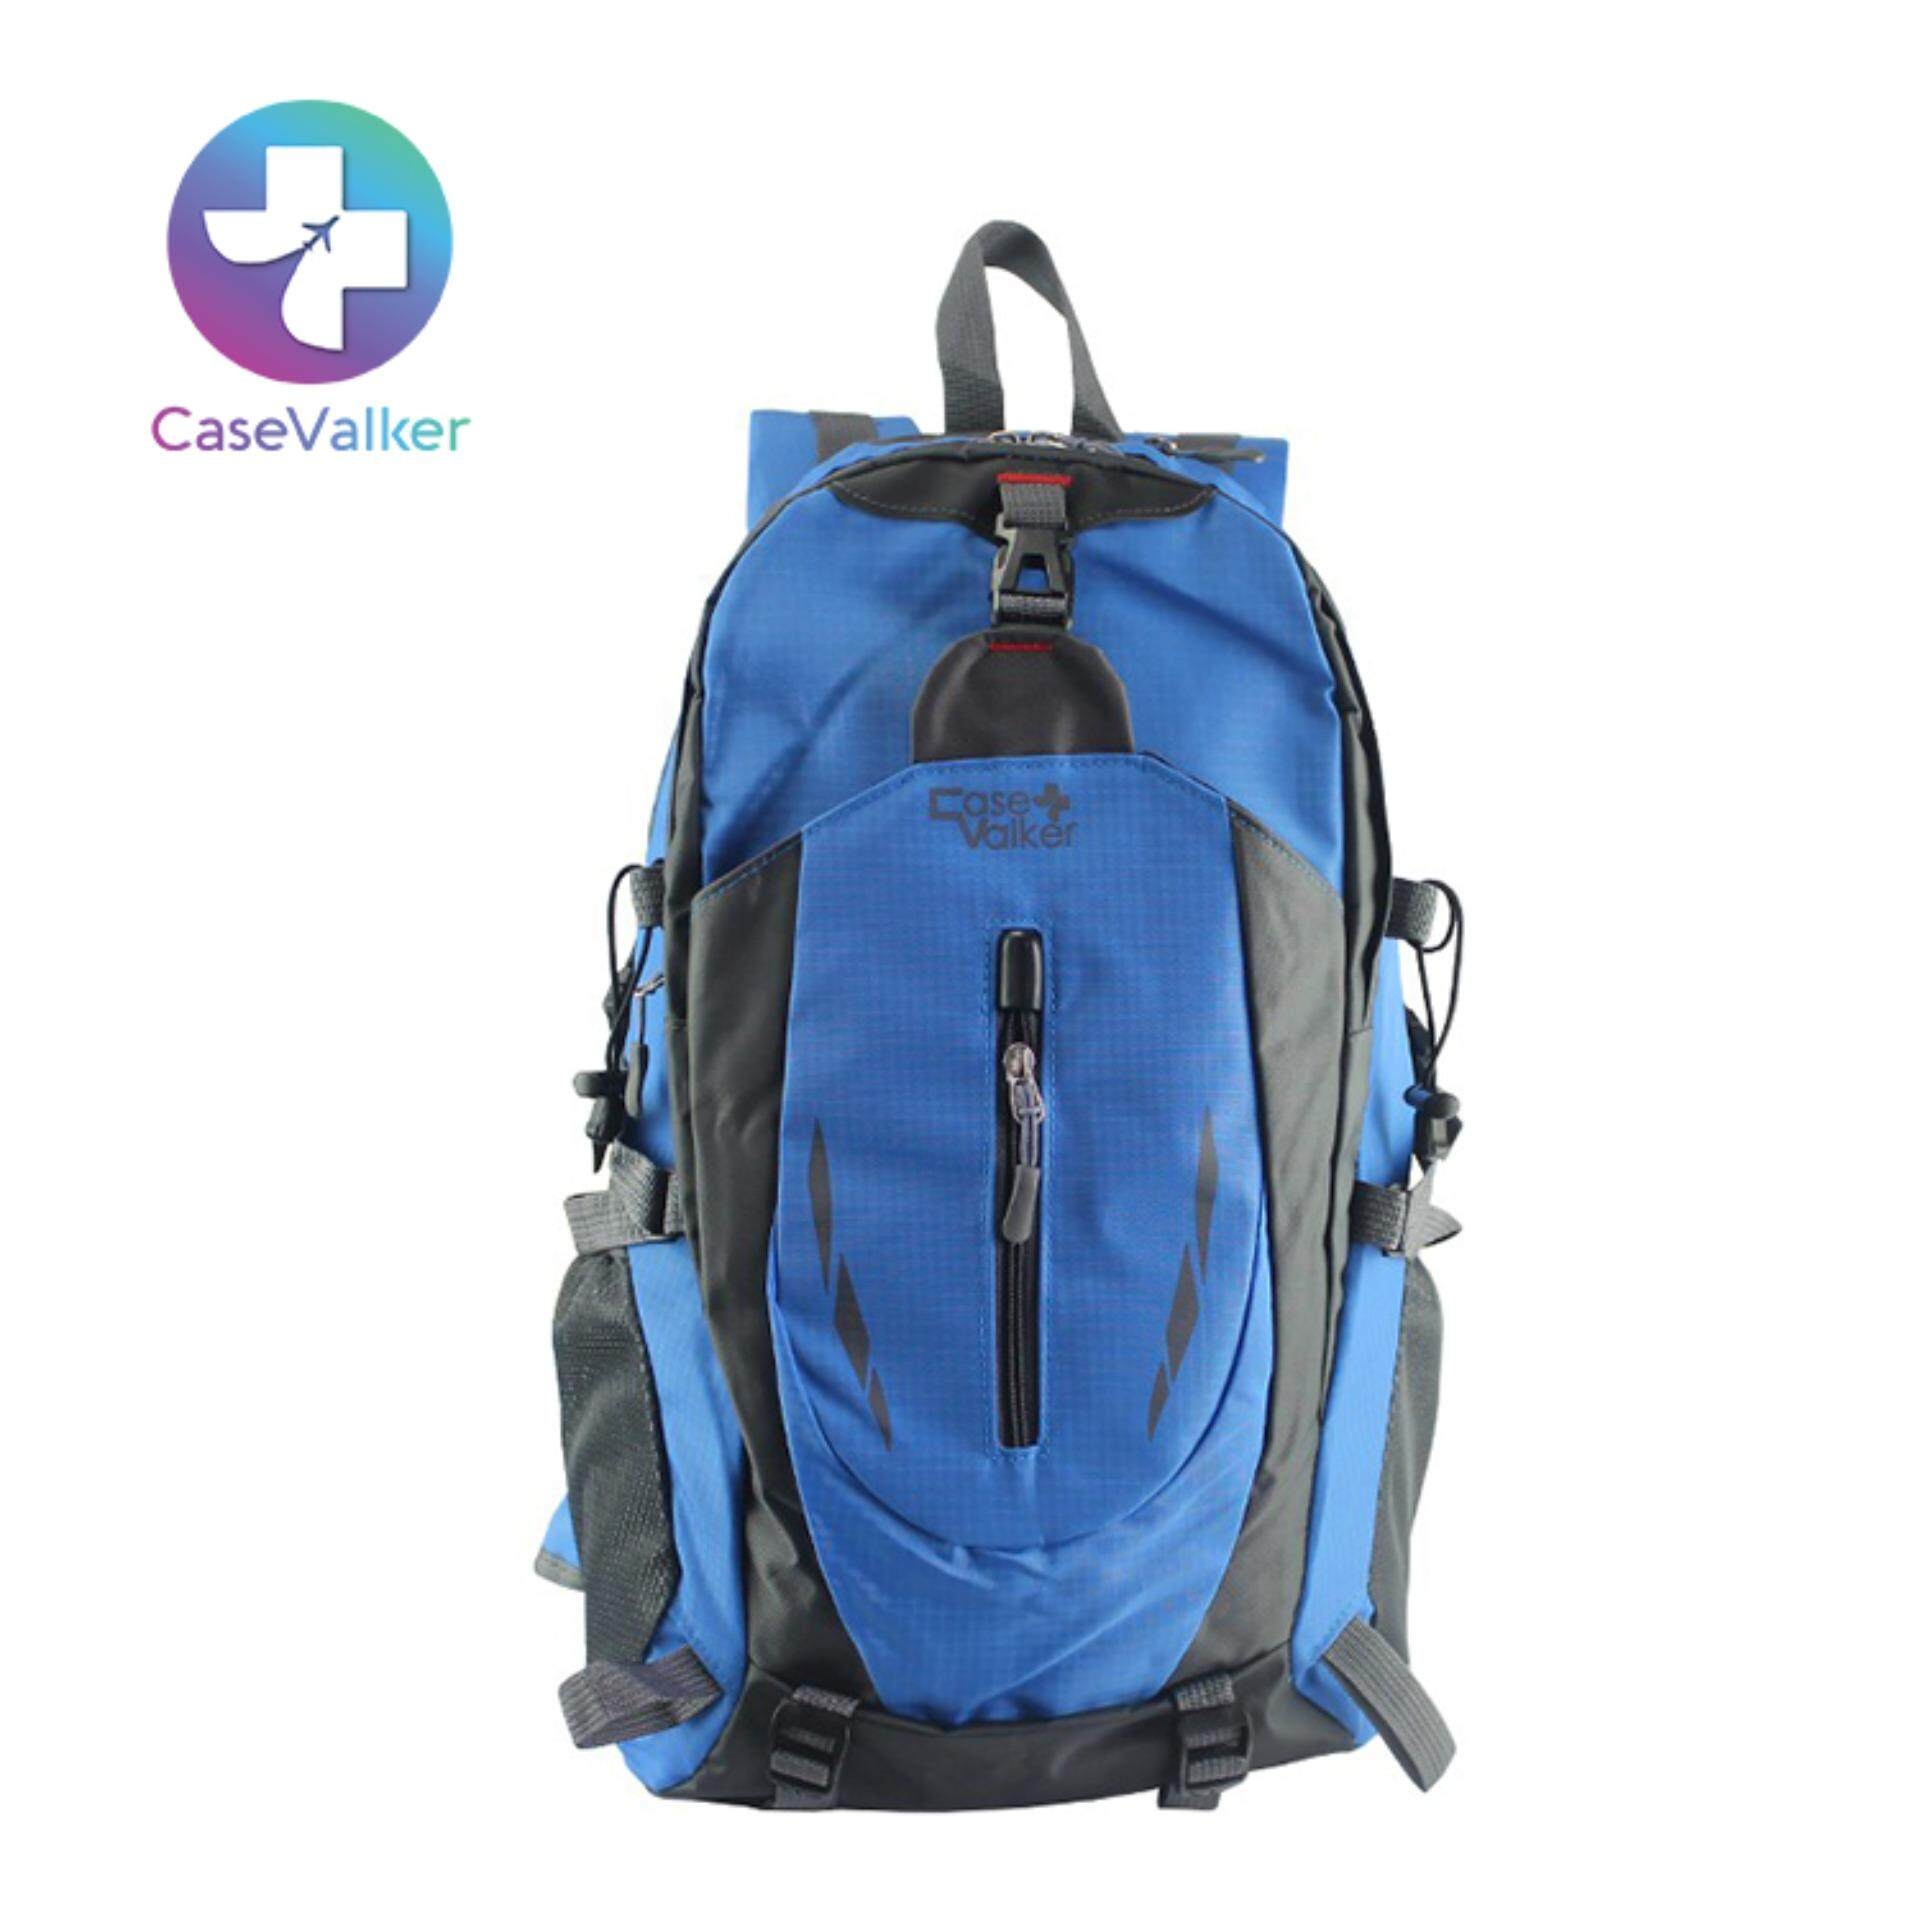 Case Valker 40L Outdoor Hiking Travel Nylon Backpack (Blue) 1df873f5e33f9